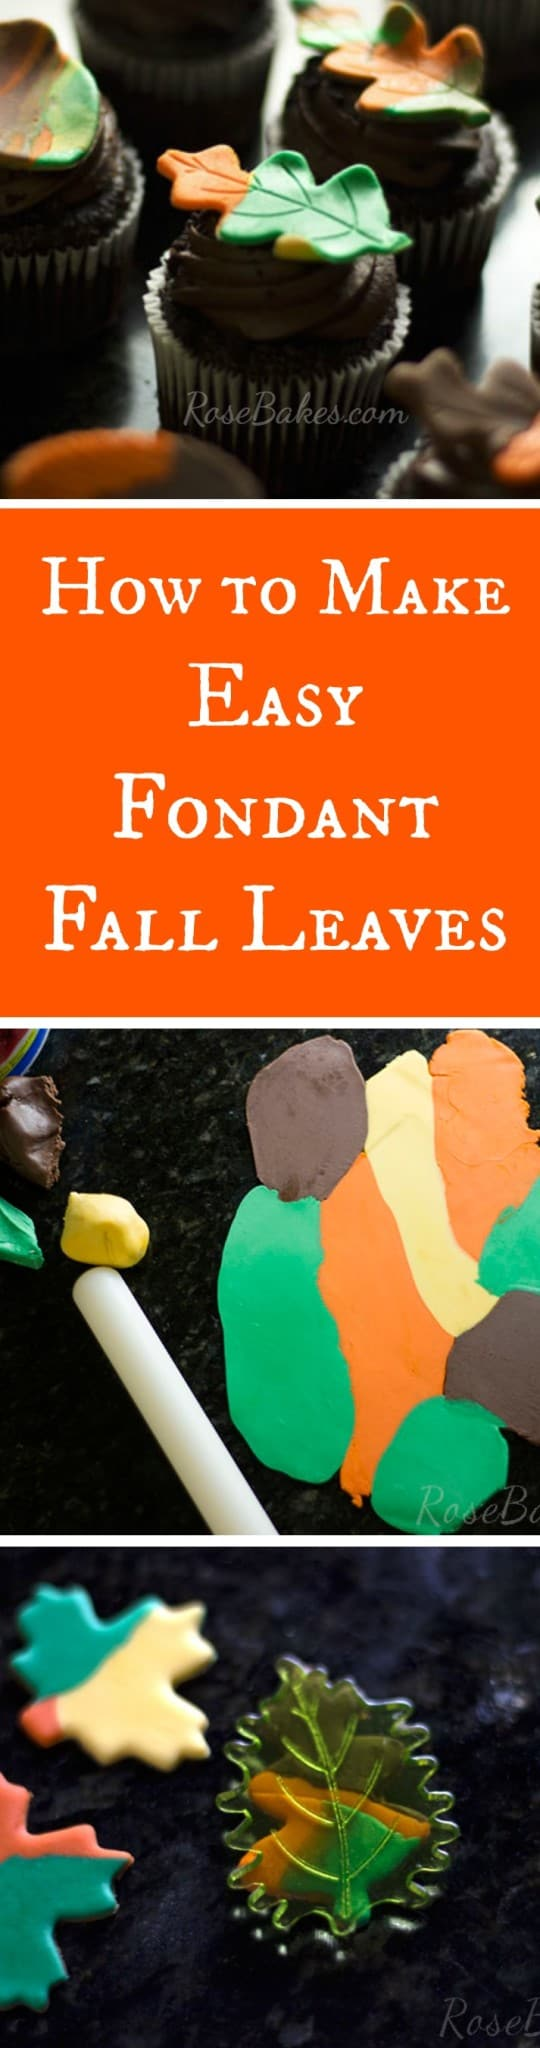 How to Make Fondant Fall Leaves RoseBakes